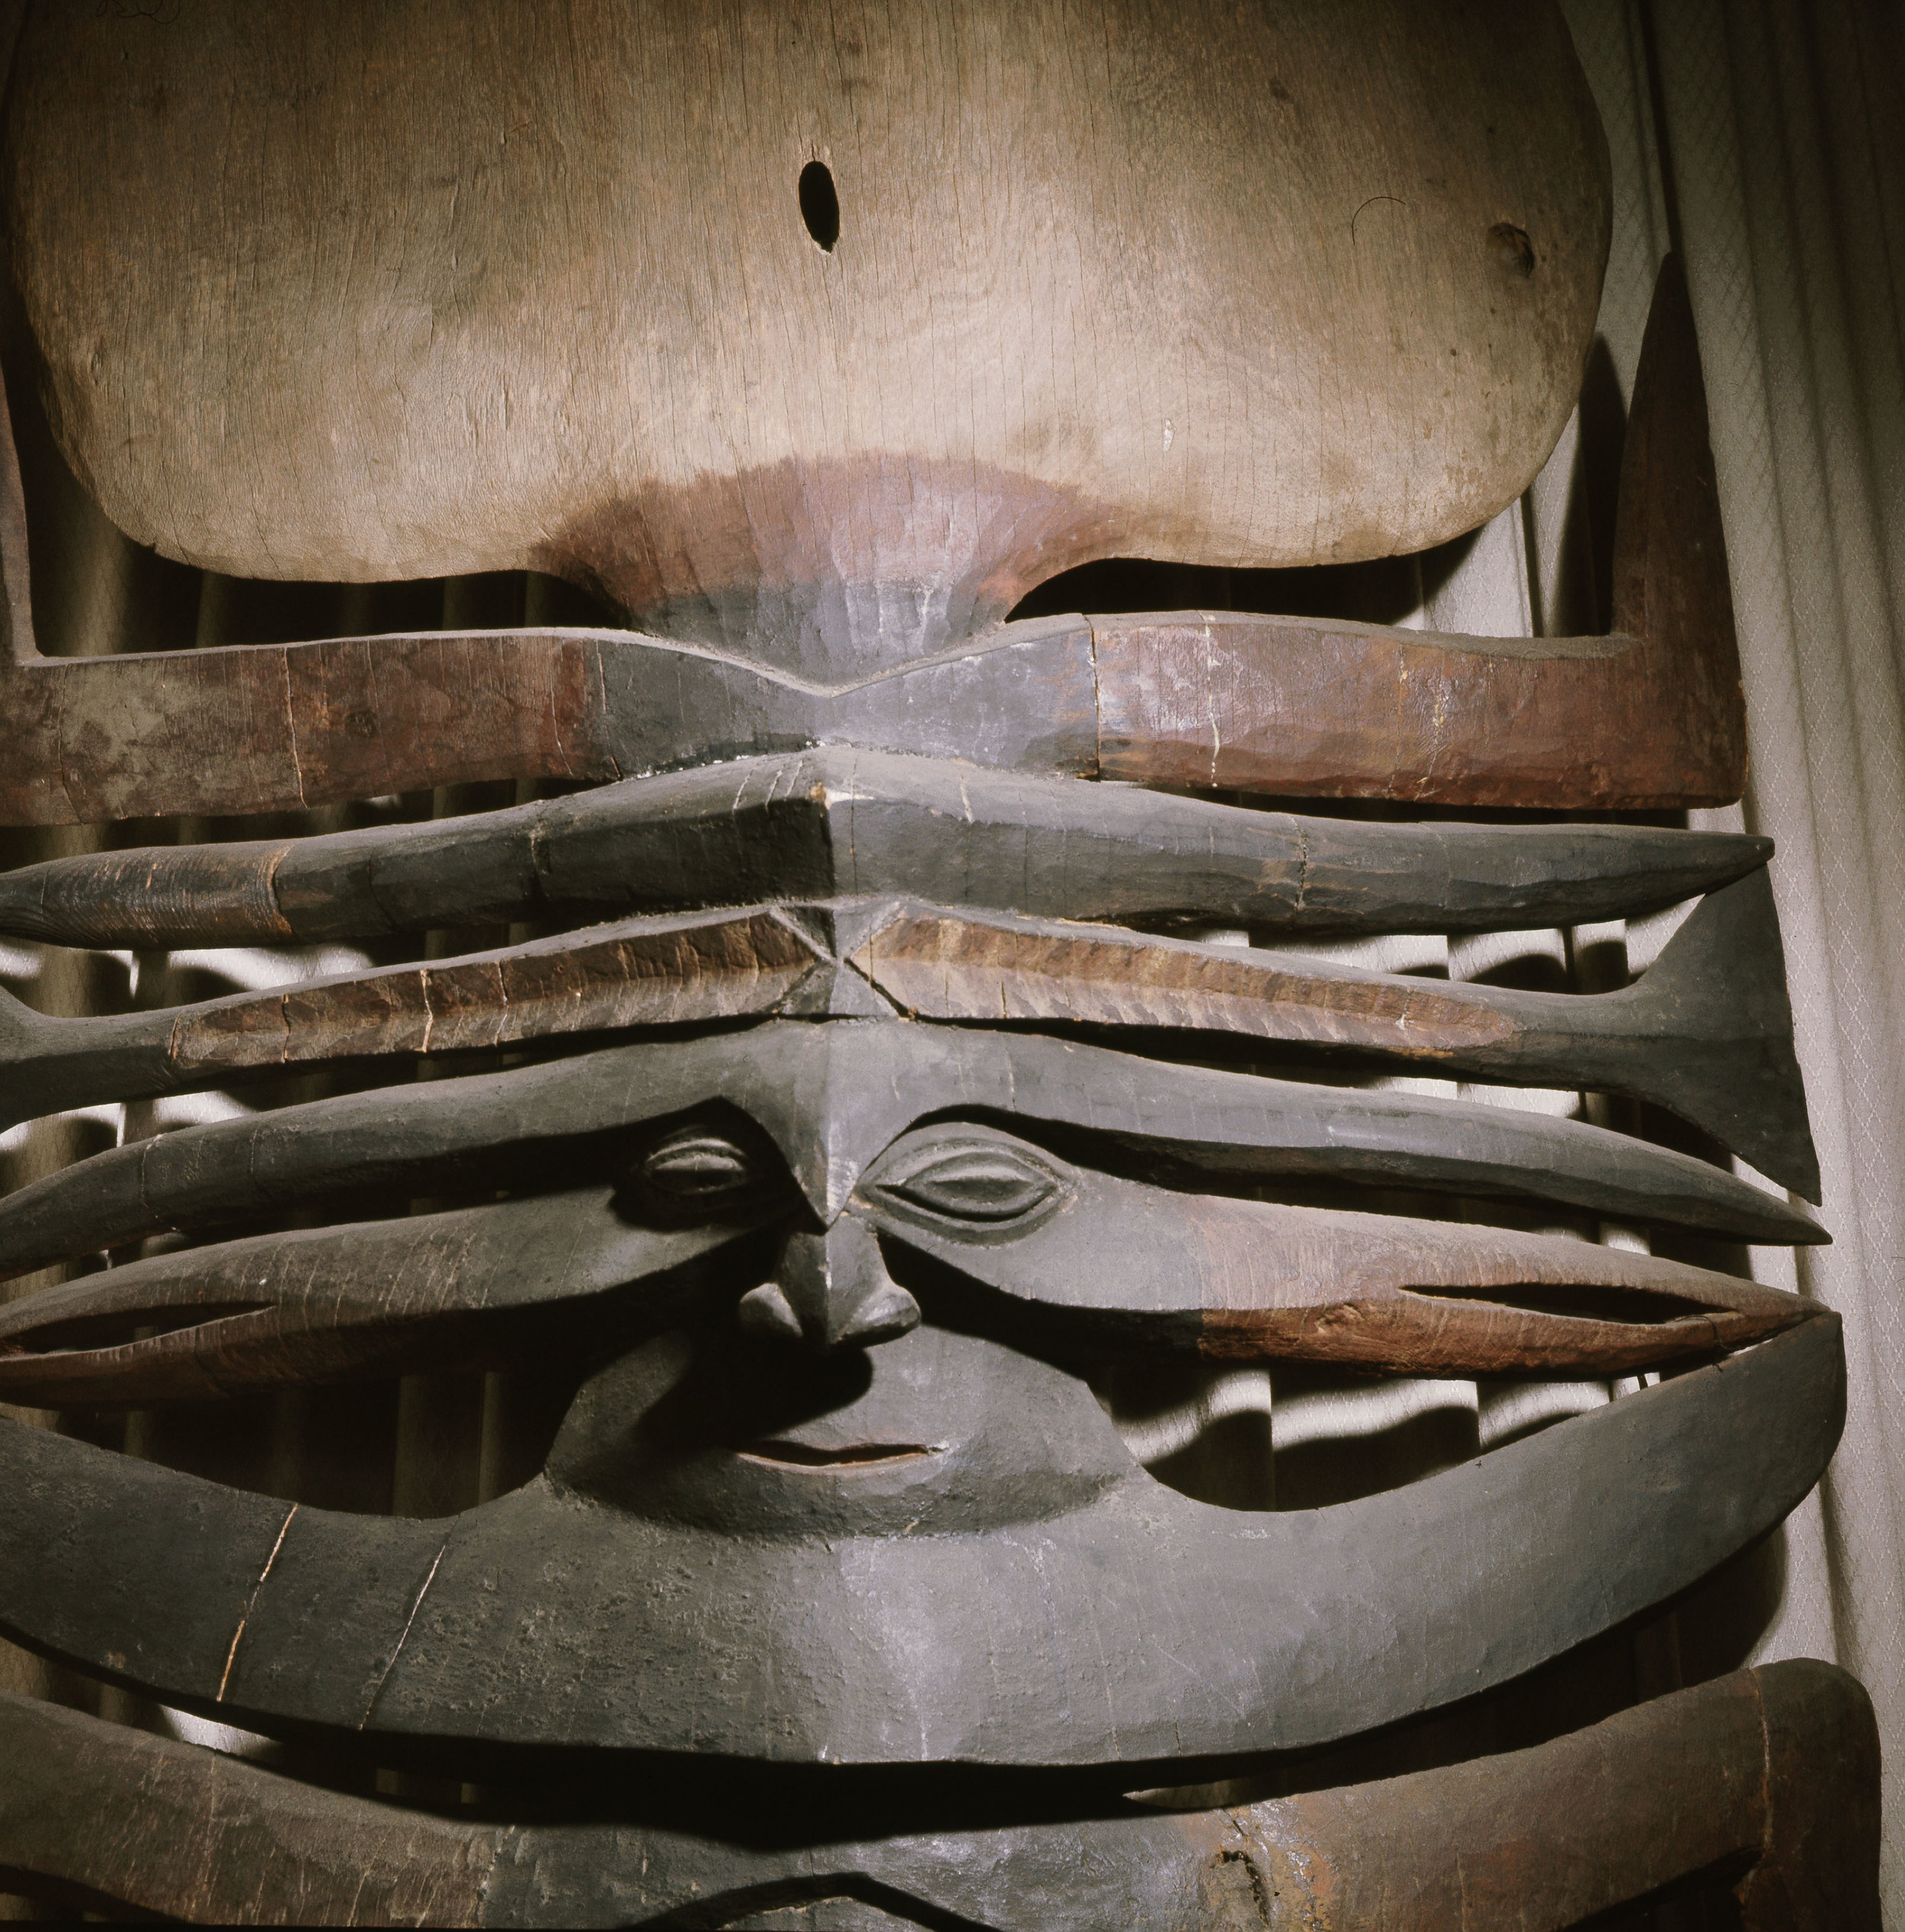 Detail of a carving from a men's meeting house. New Caledonian carving employed a complex form of split representation where details of the head are separated into flat segments and the rear of the head is spread out above the face. Country of Origin: New Caledonia. Material Size: Wood. Credit Line: Werner Forman Archive/ Museum fur Volkerkunde, Vienna.